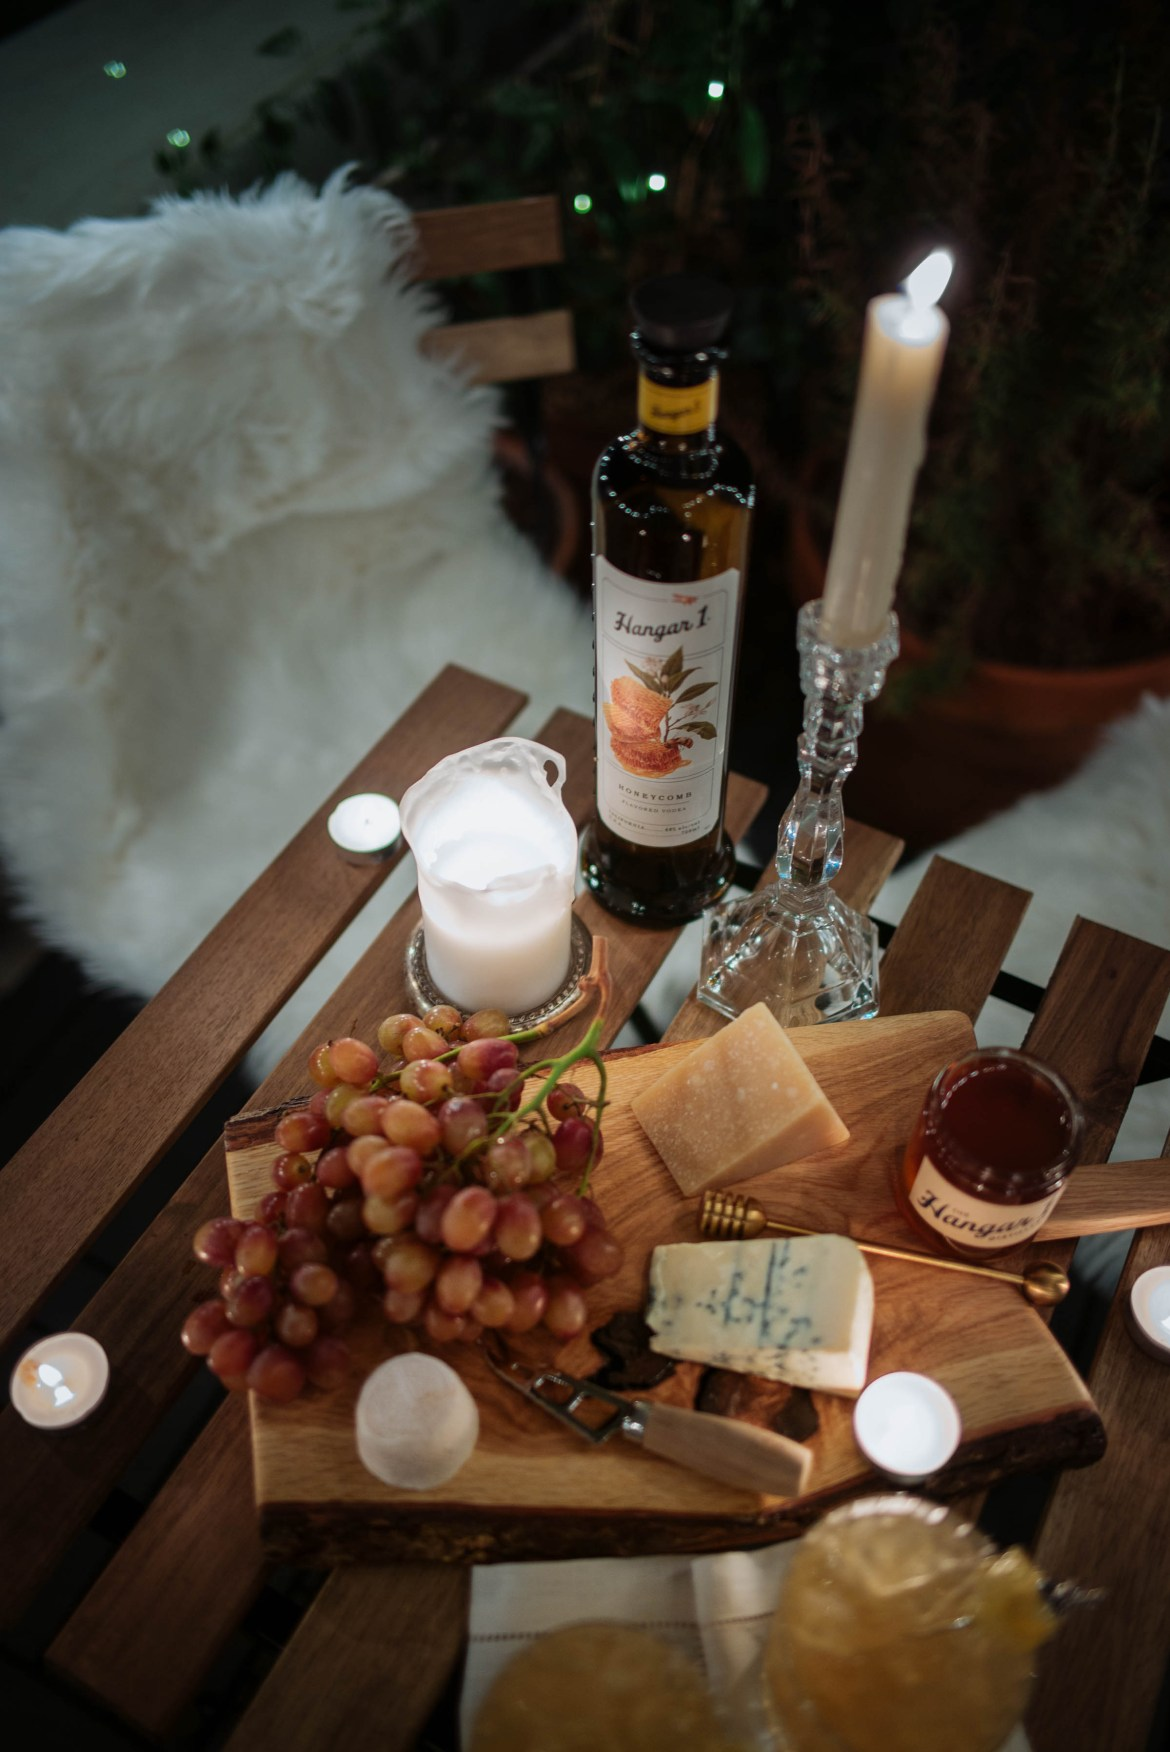 If you're looking for an easy appetizer, this is it! Your cheese board with cocktails and it's the perfect start to a dinner party or an alfresco autumn evening with friends. A cheese board with honey and fruit would also be an easy appetizer at your holiday gatherings. Sponsored by @Hangar1distillery.